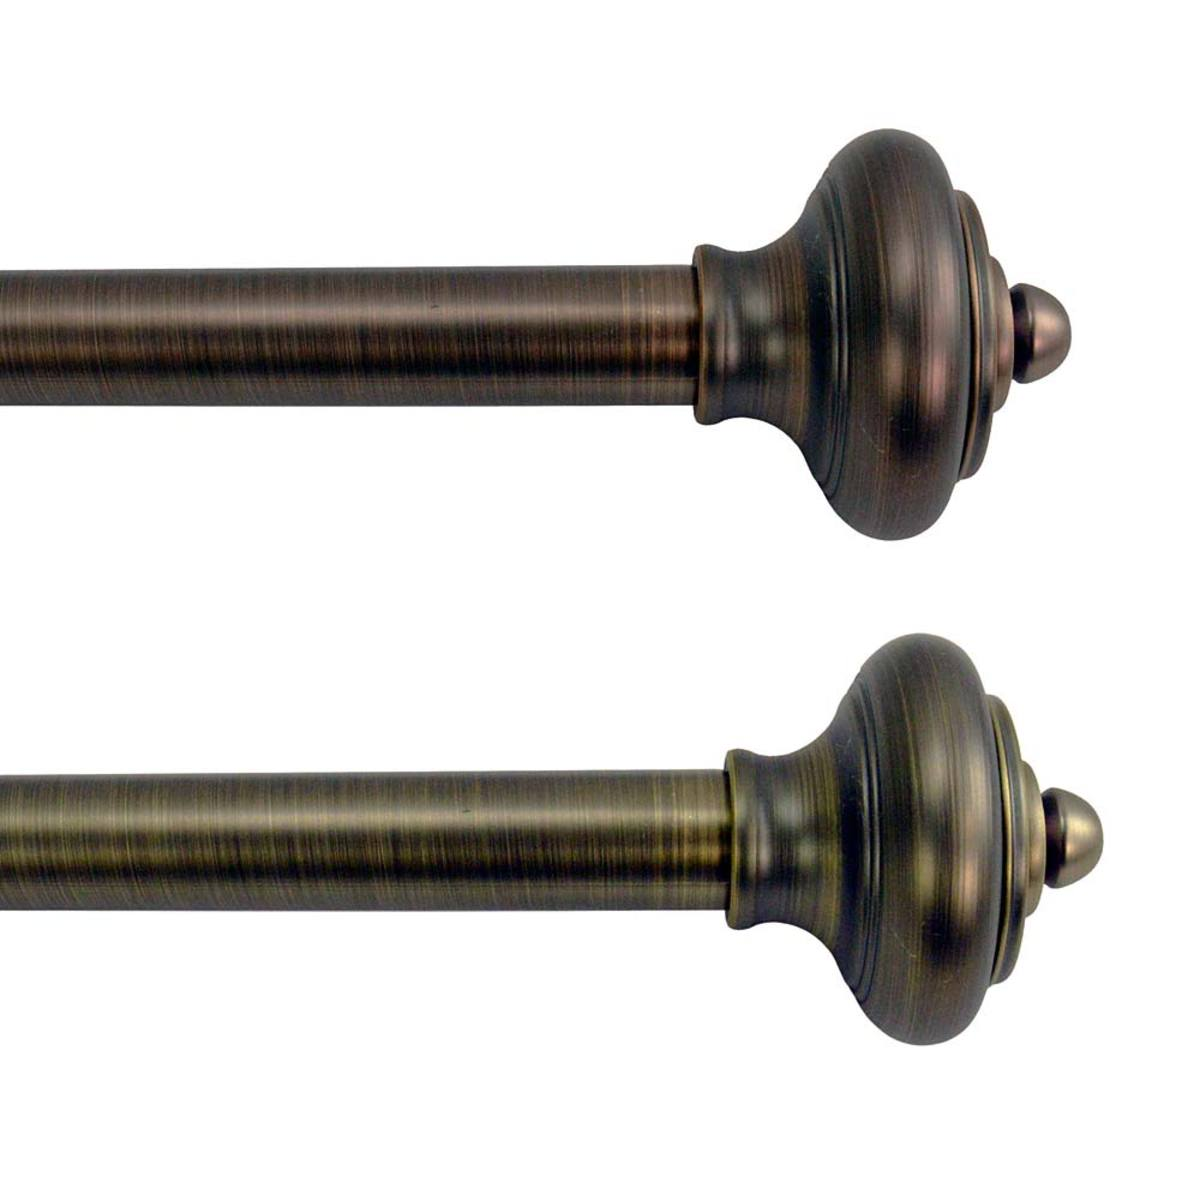 Lexington Adjustable Curtain Rod Collection with Royale Finial